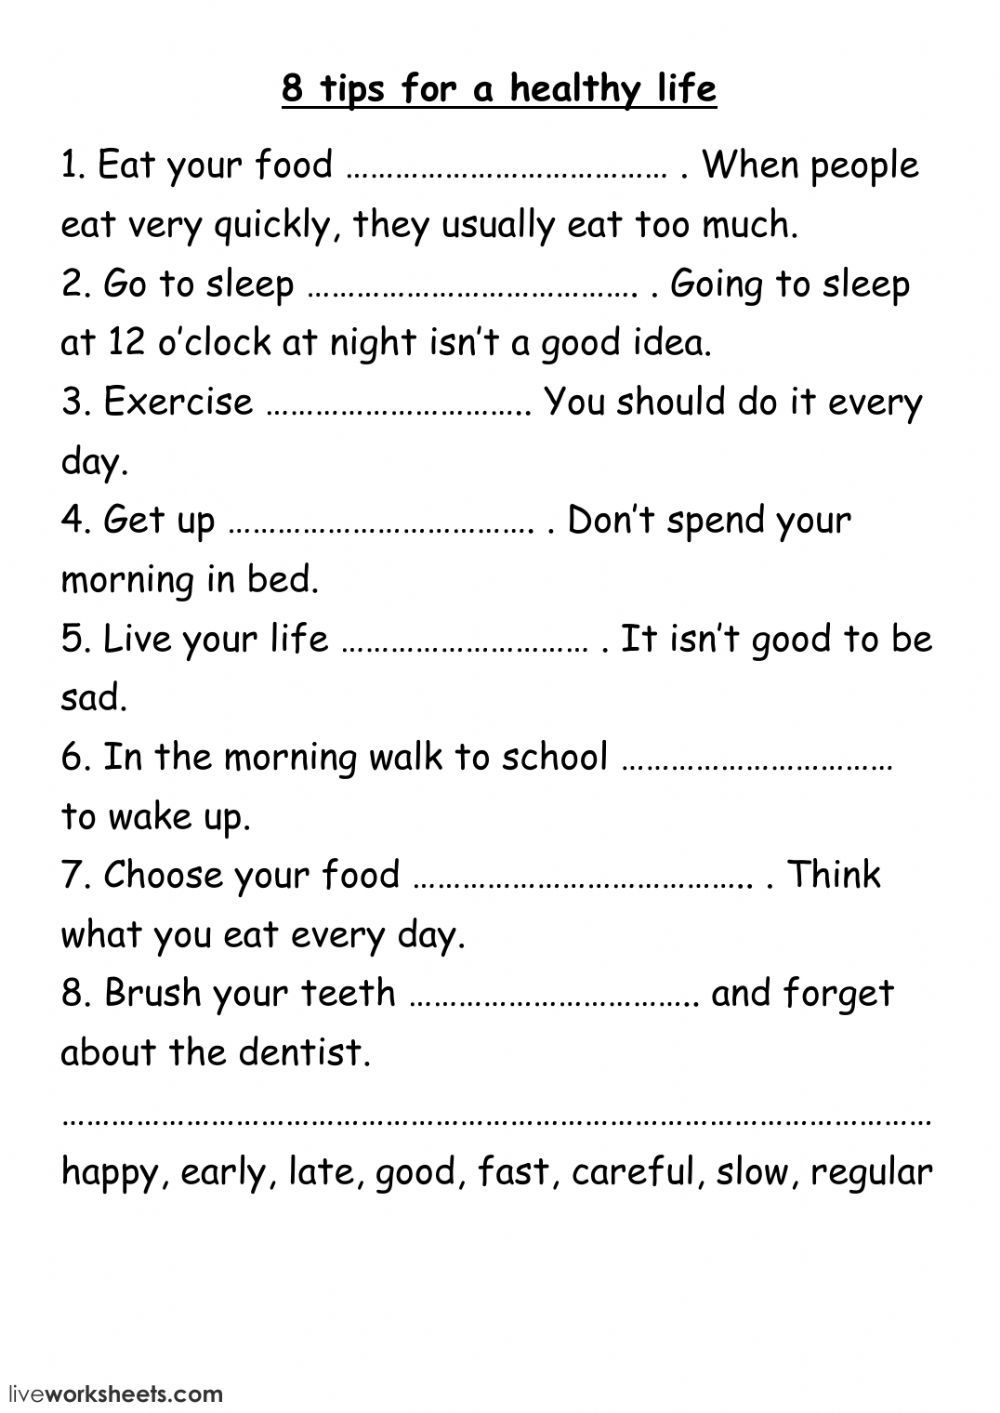 Adverbs Of Manner Interactive And Downloadable Worksheet You Can Do The Exercises Onli Adverbs English As A Second Language English As A Second Language Esl